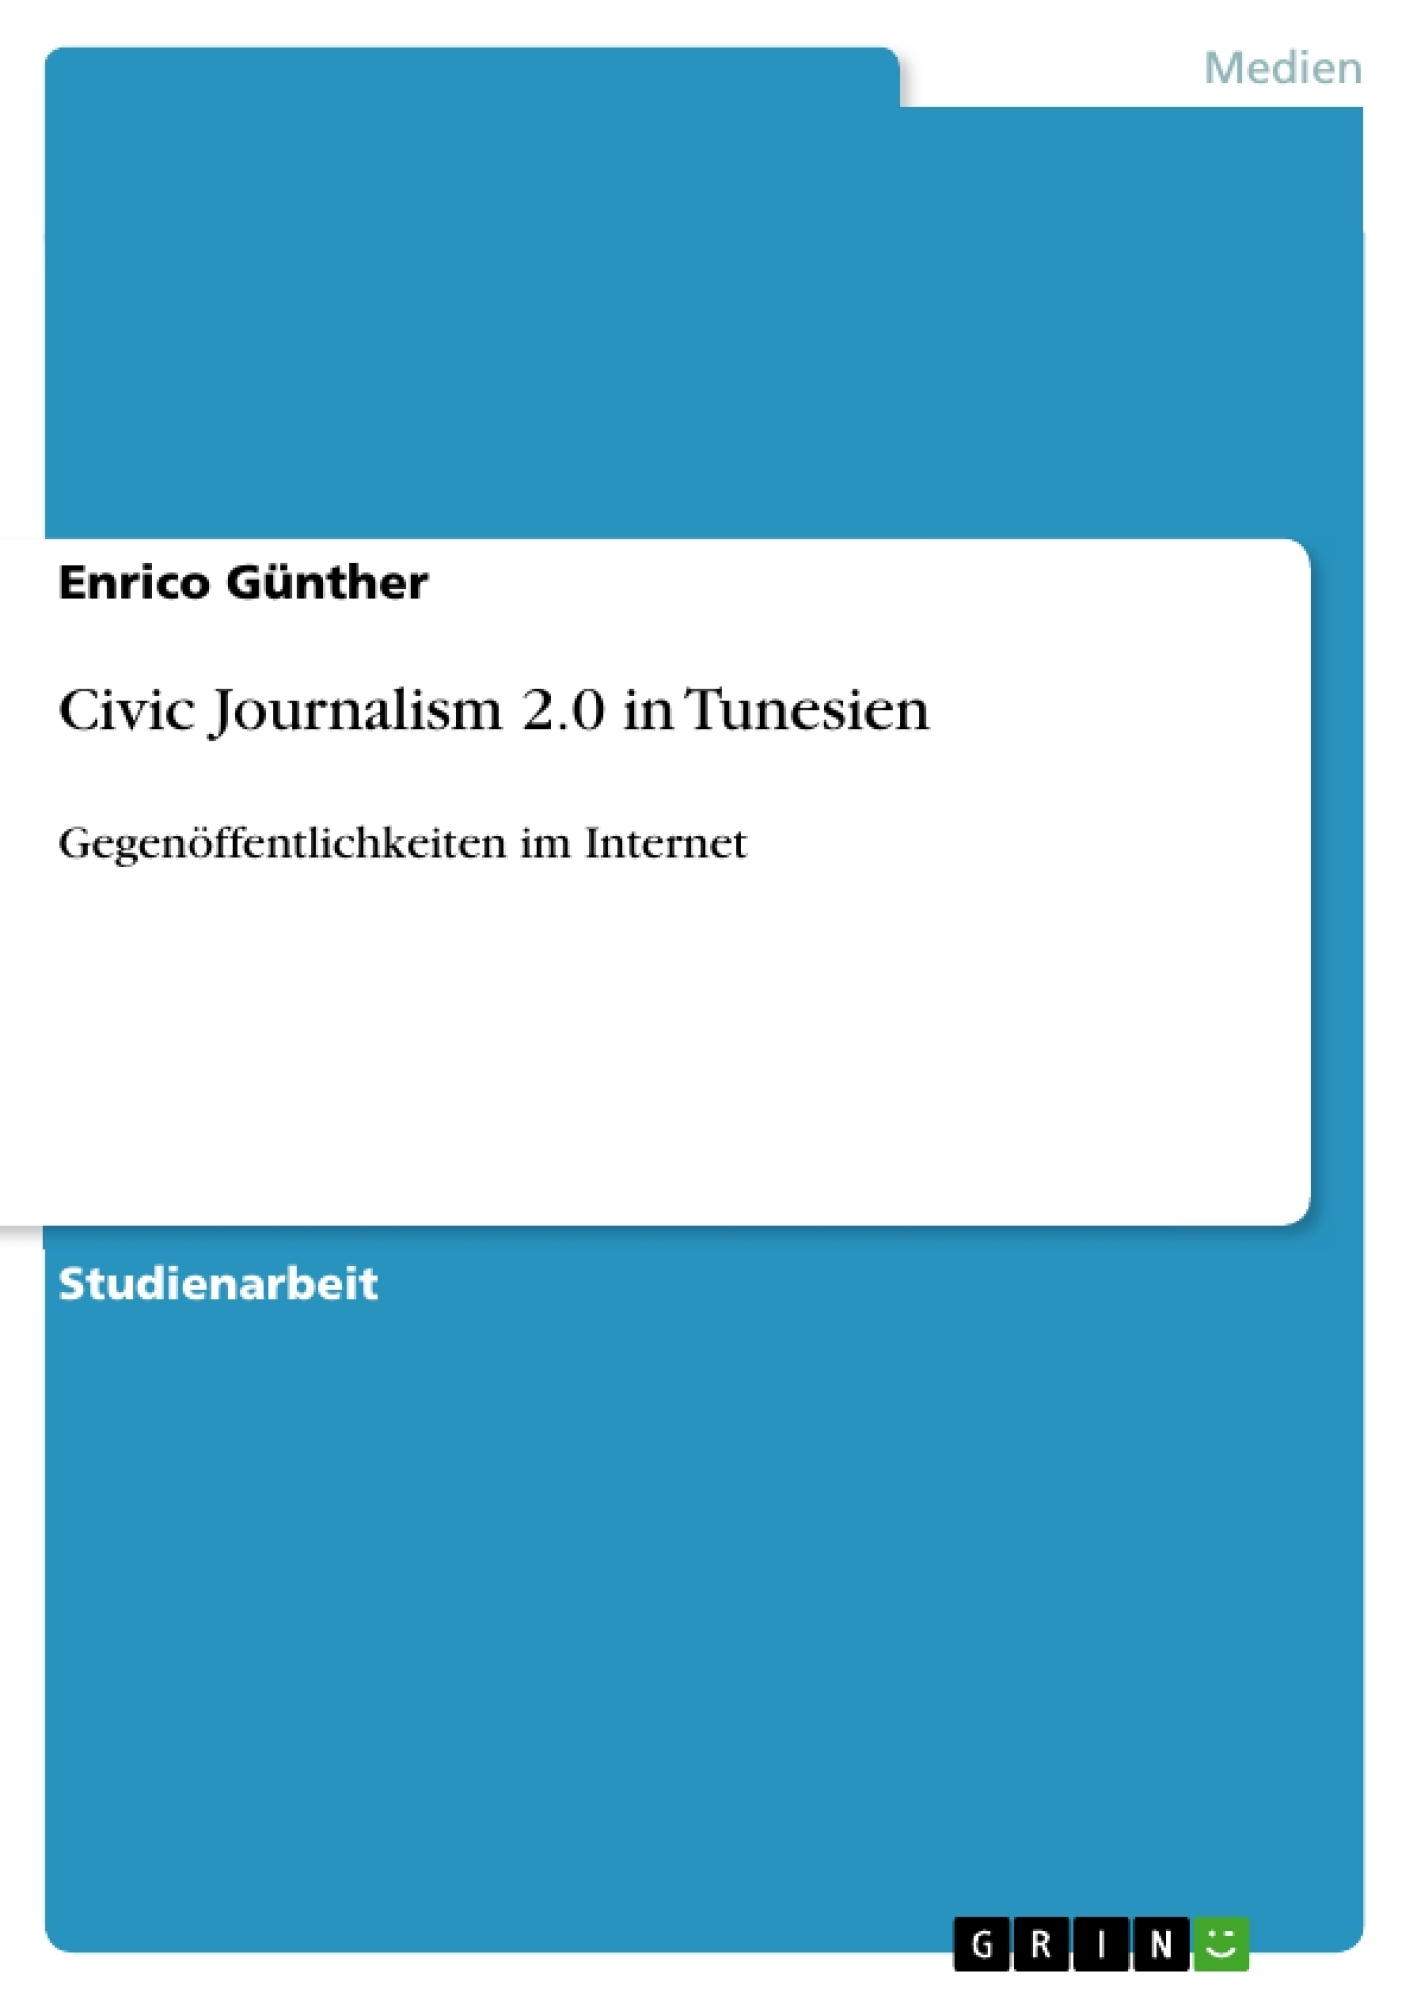 Titel: Civic Journalism 2.0 in Tunesien